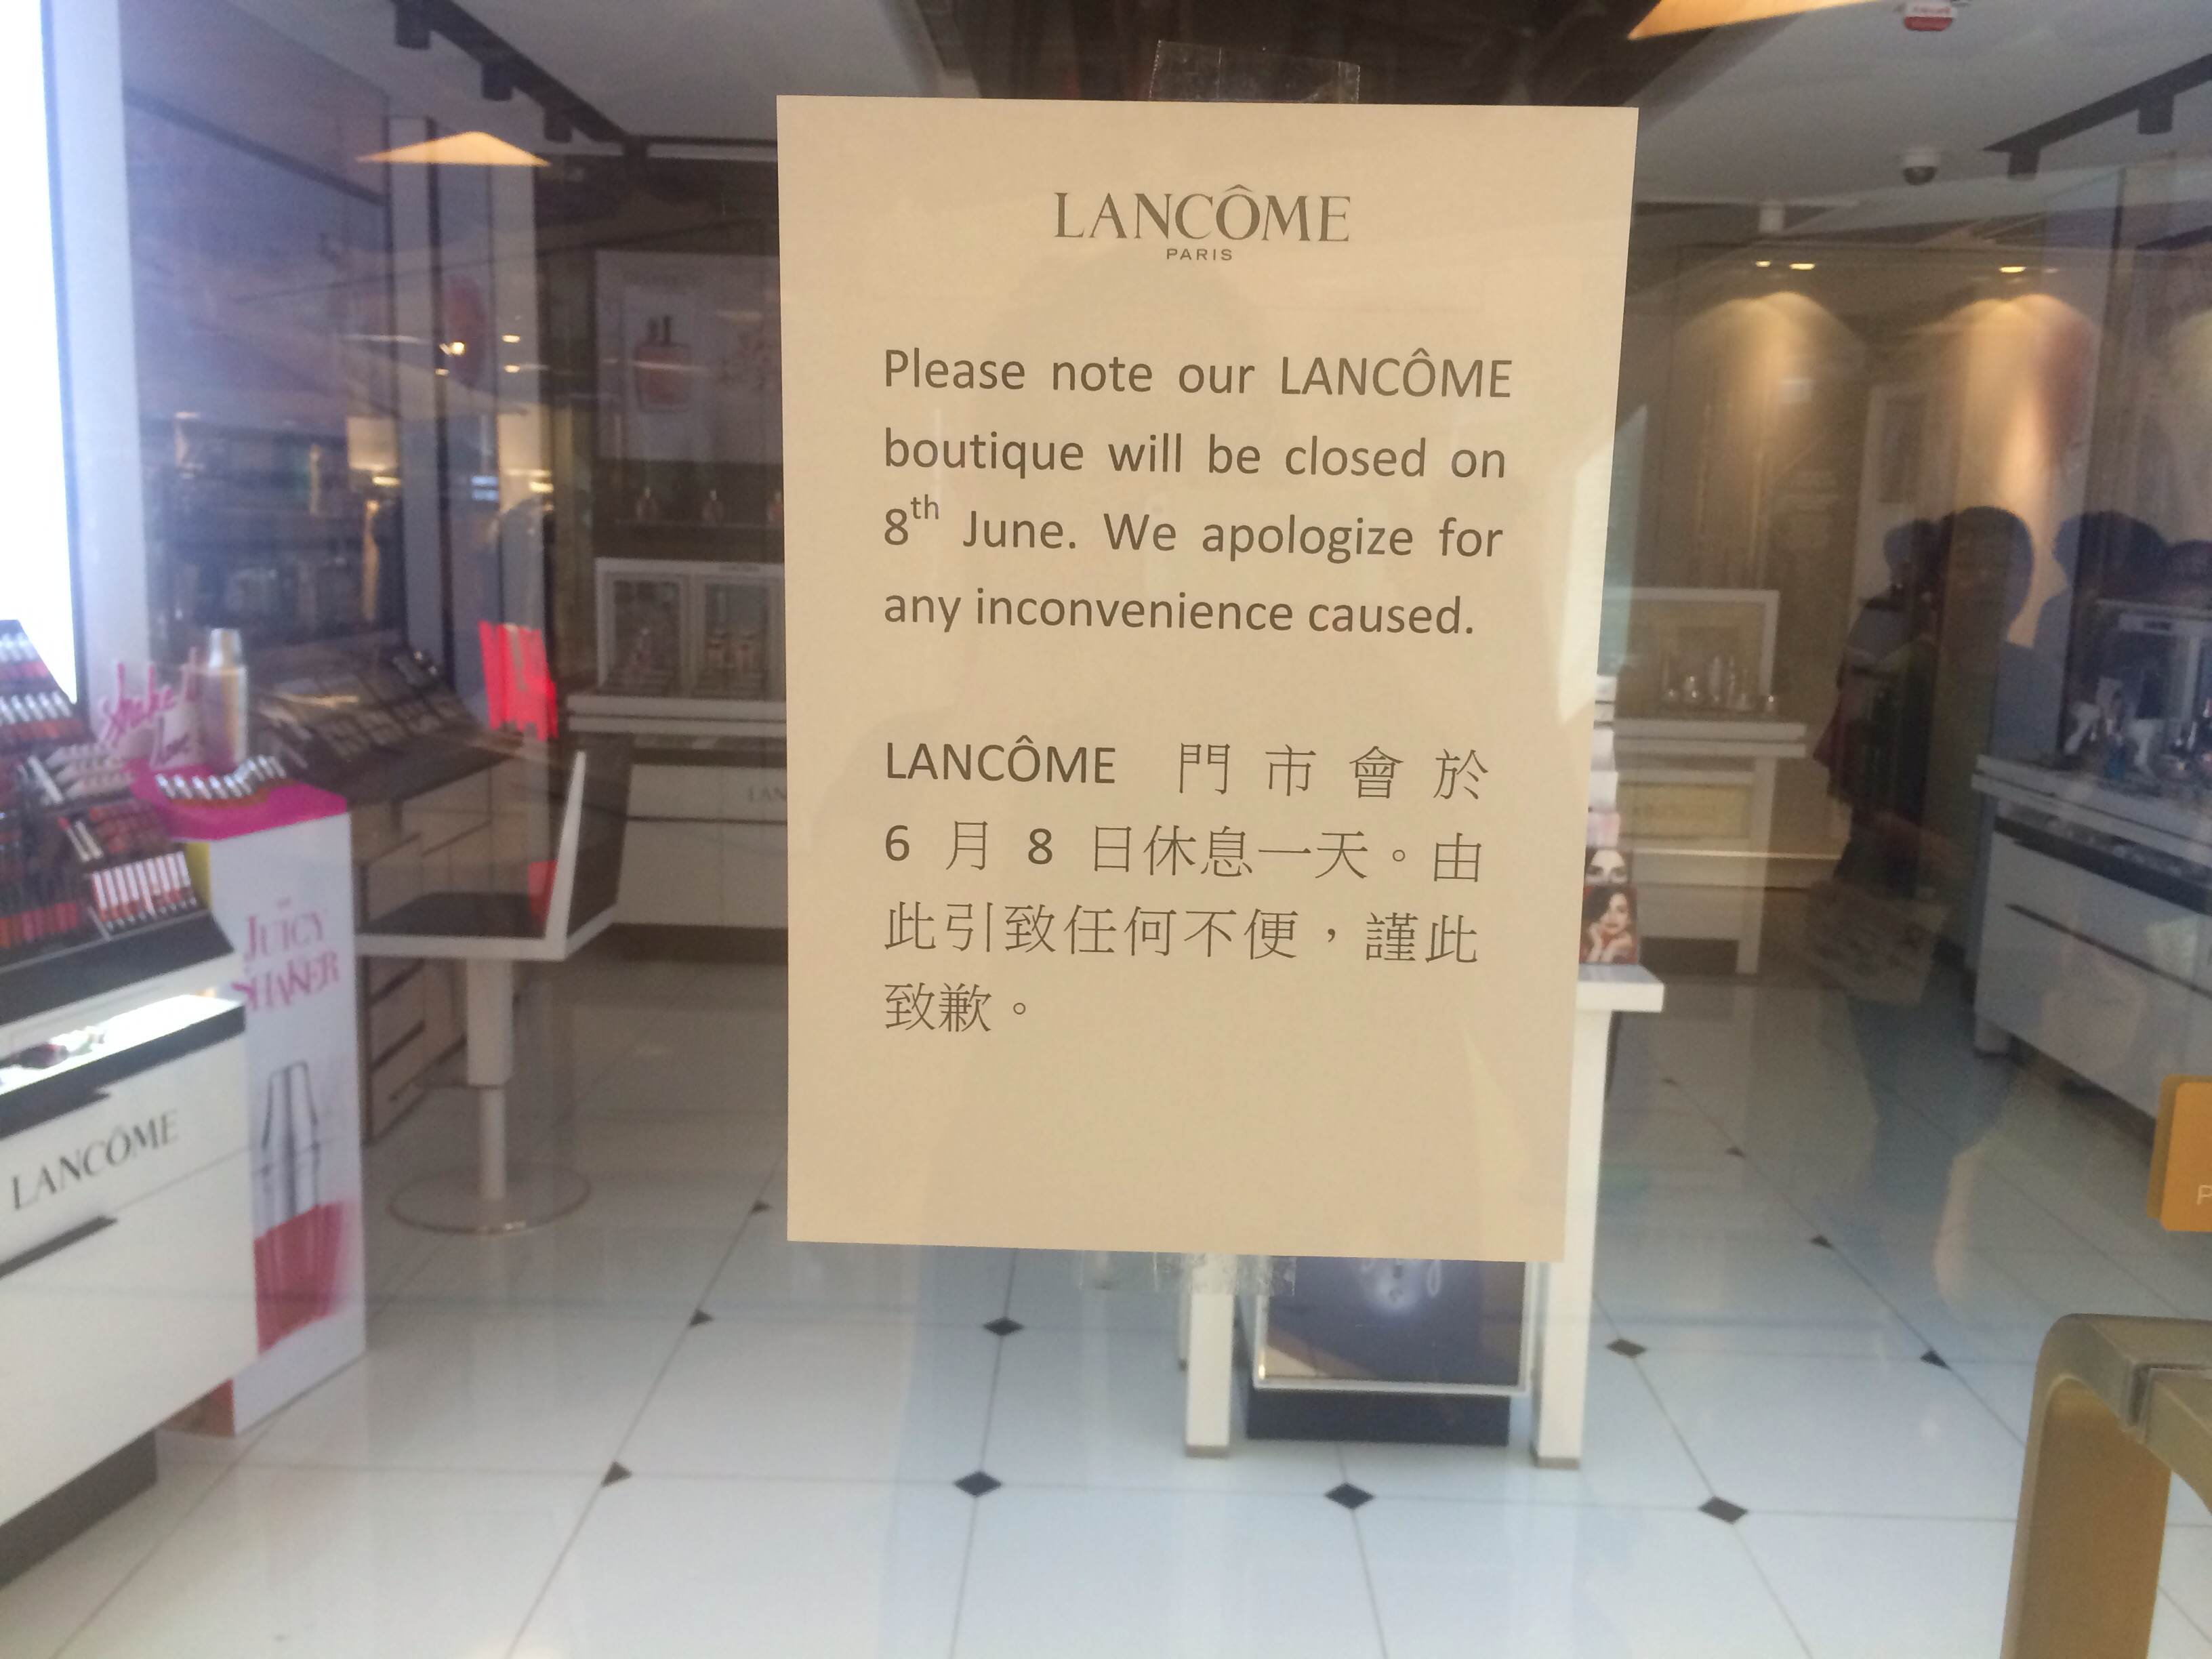 A sign on the store doors of Lancome at Cityplaza in Hong Kong advises customers that the store has been temporarily closed